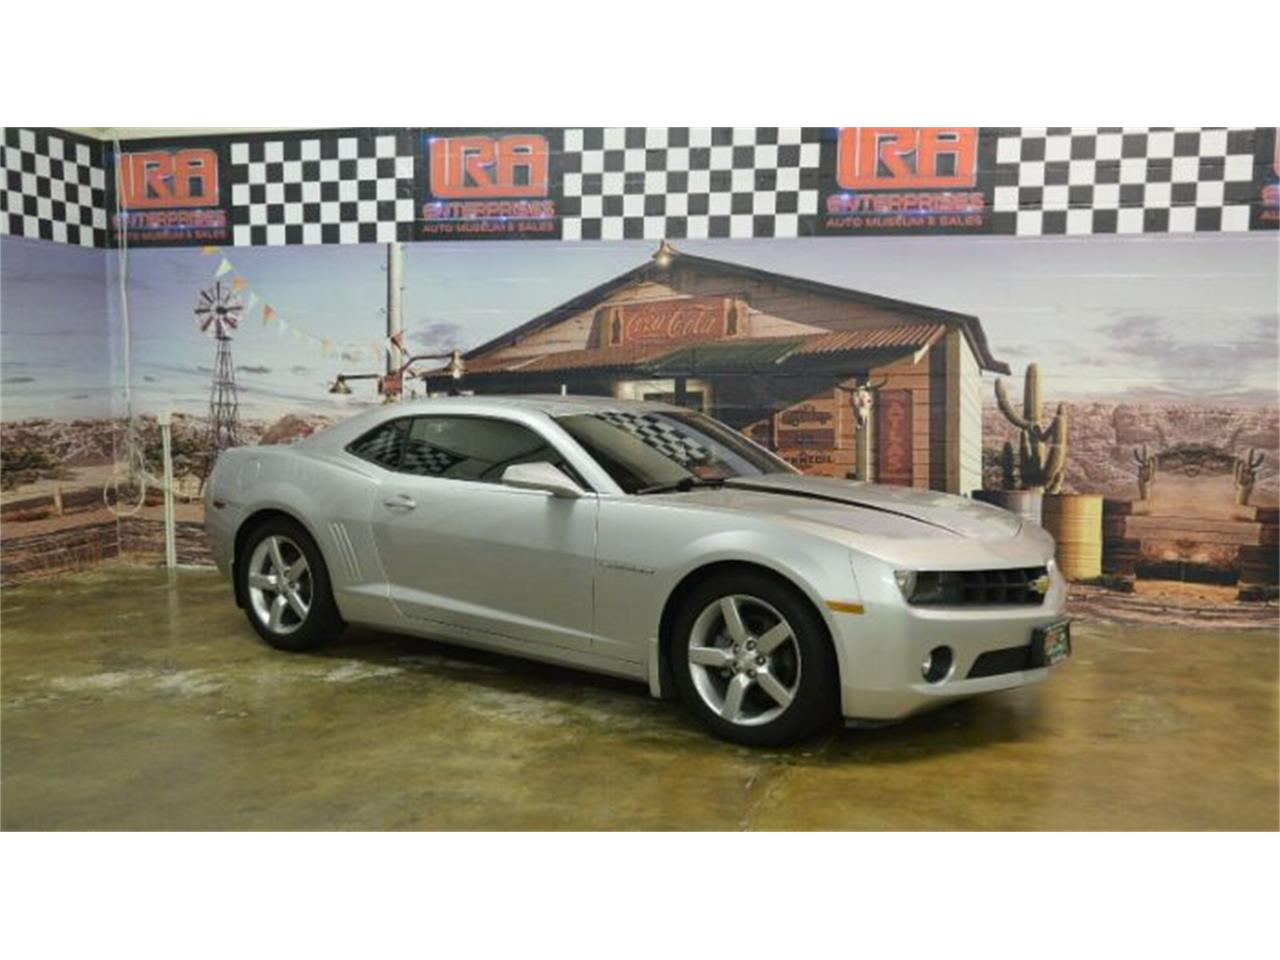 2013 Chevrolet Camaro (CC-1209237) for sale in Cadillac, Michigan